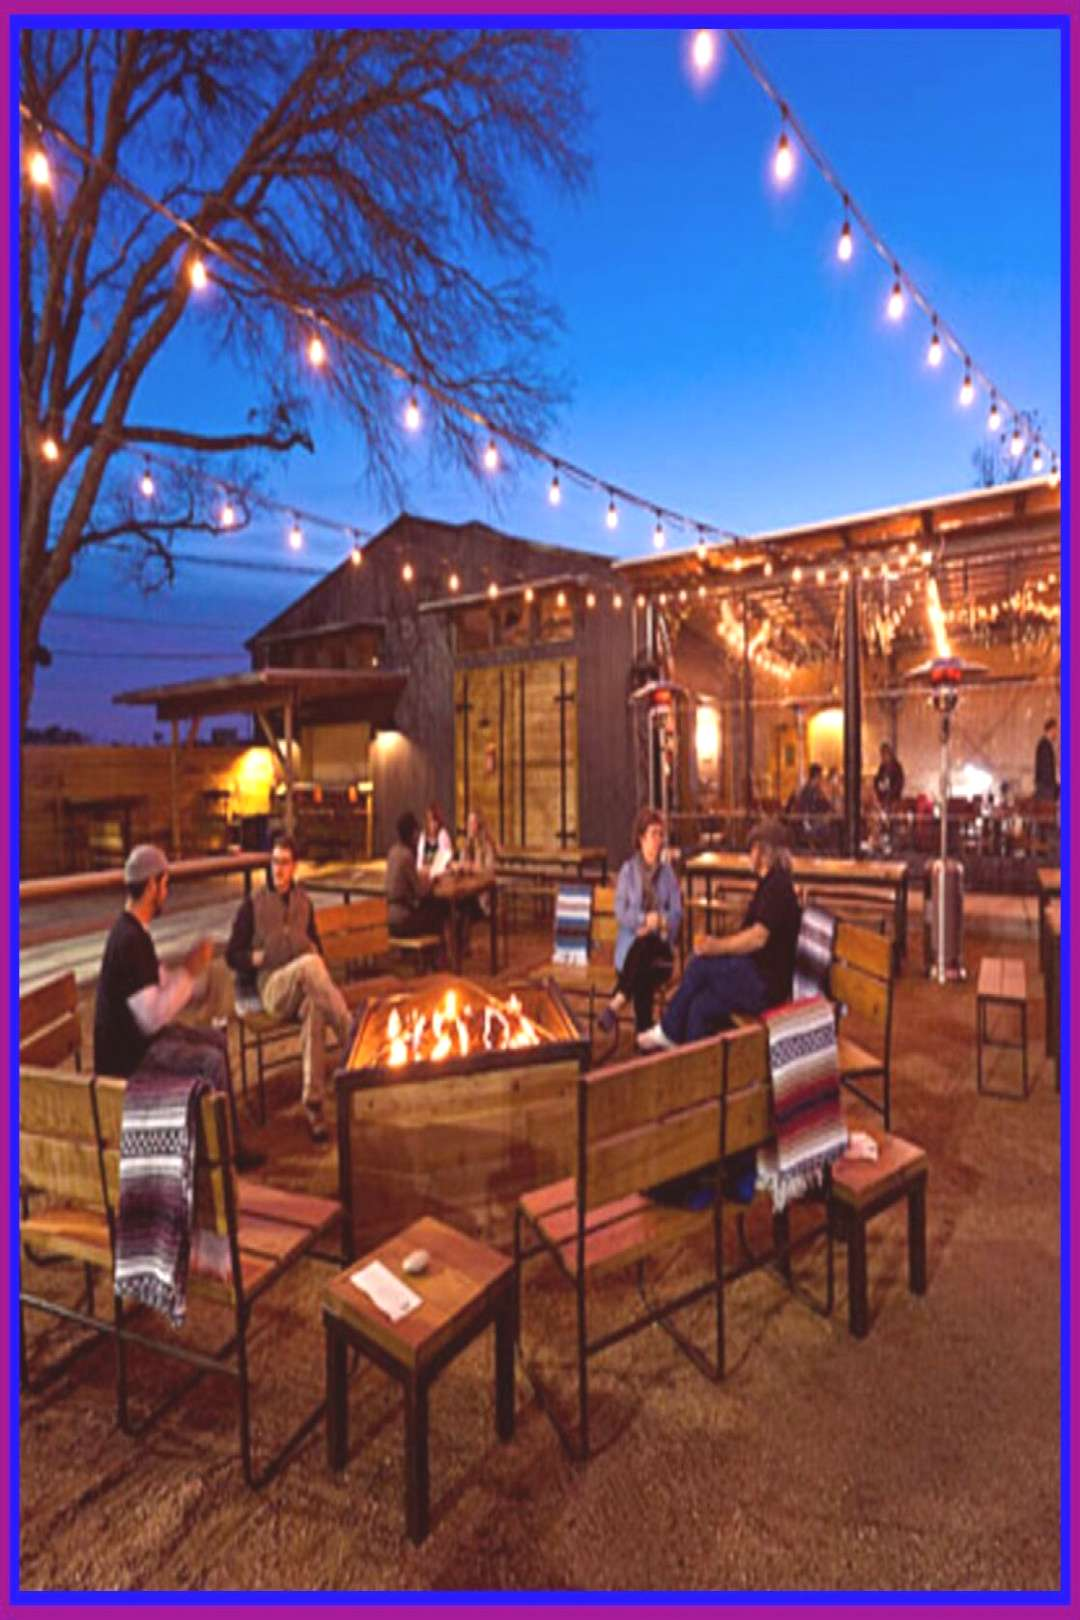 120 reference of outdoor patio restaurants austin outdoor patio restaurants austin-#outdoor Please